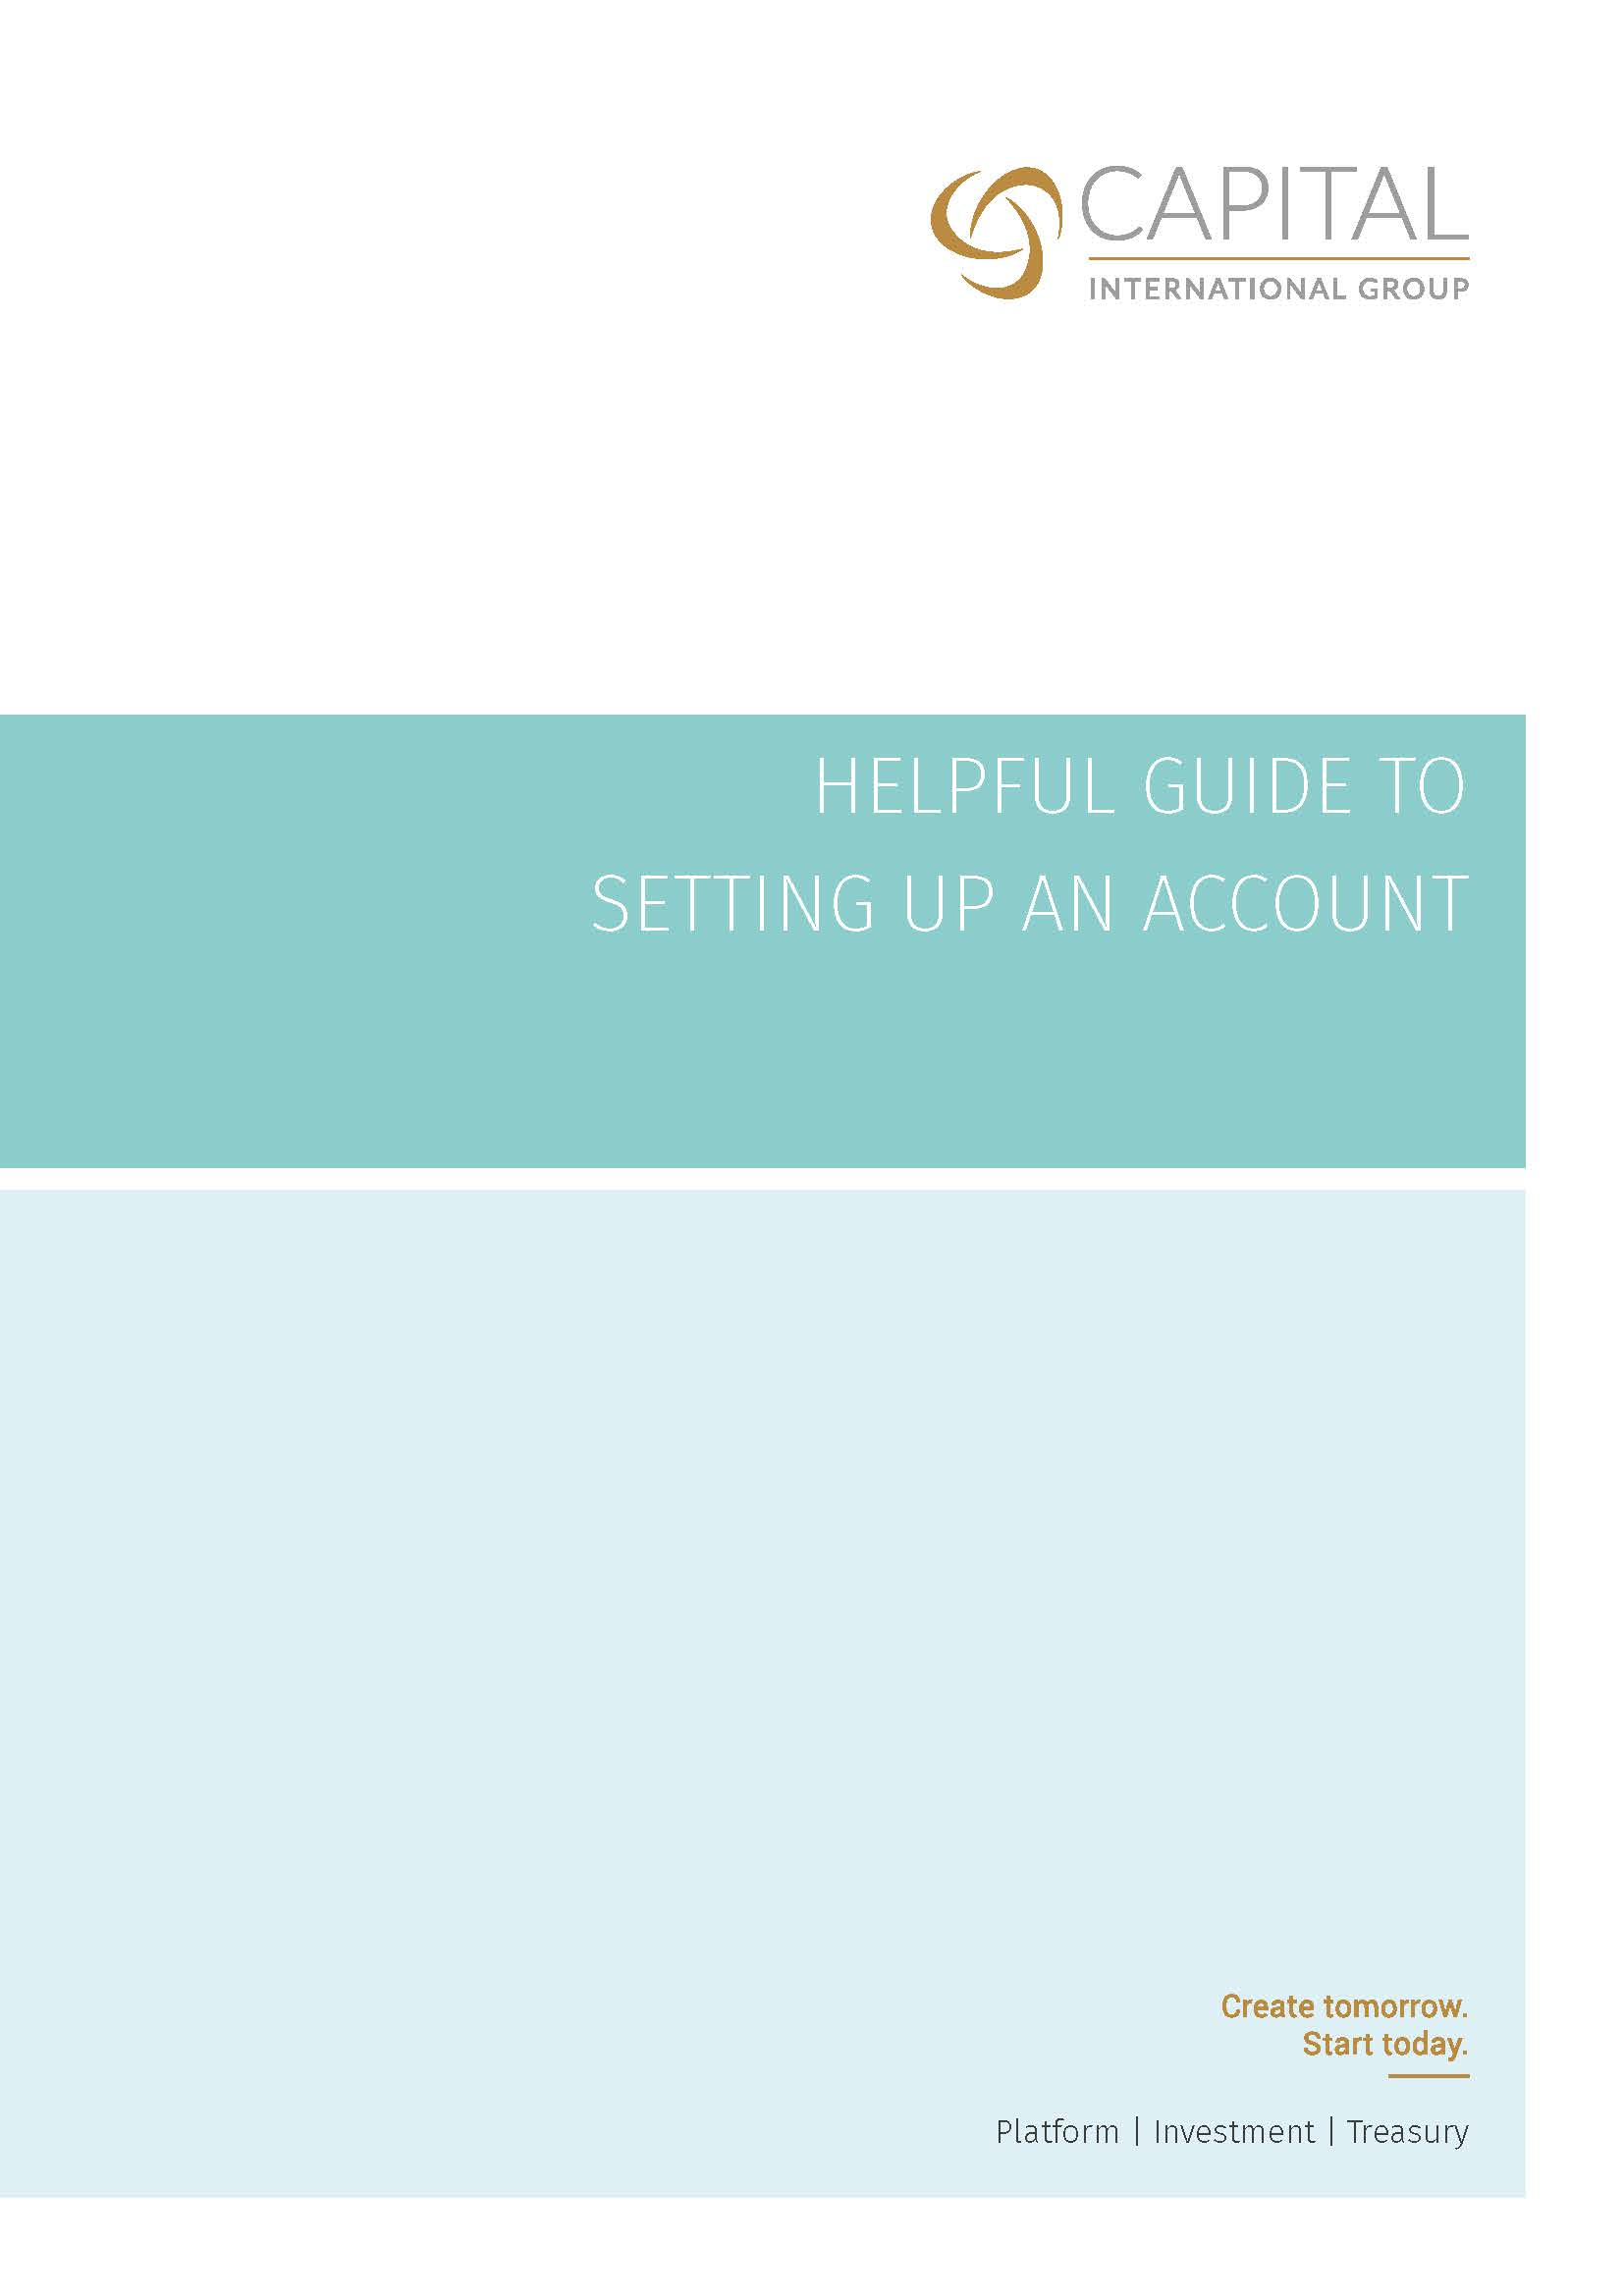 Helpful Guide to Setting Up an Account (IOM)